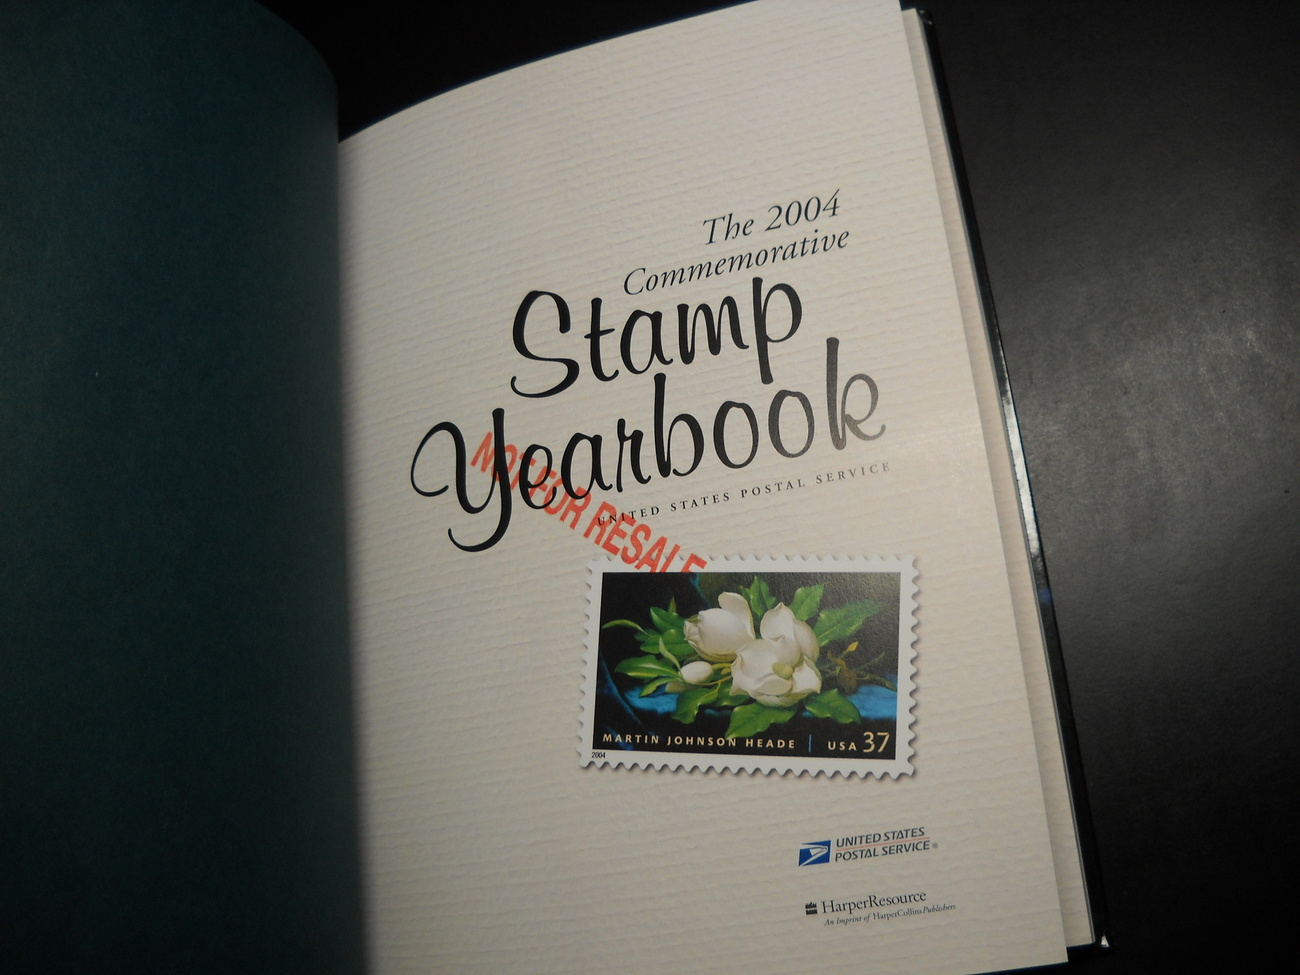 Book_collins_2004_commemorative_stamp_yearbook_united_states_postal_service_usps_hc_03